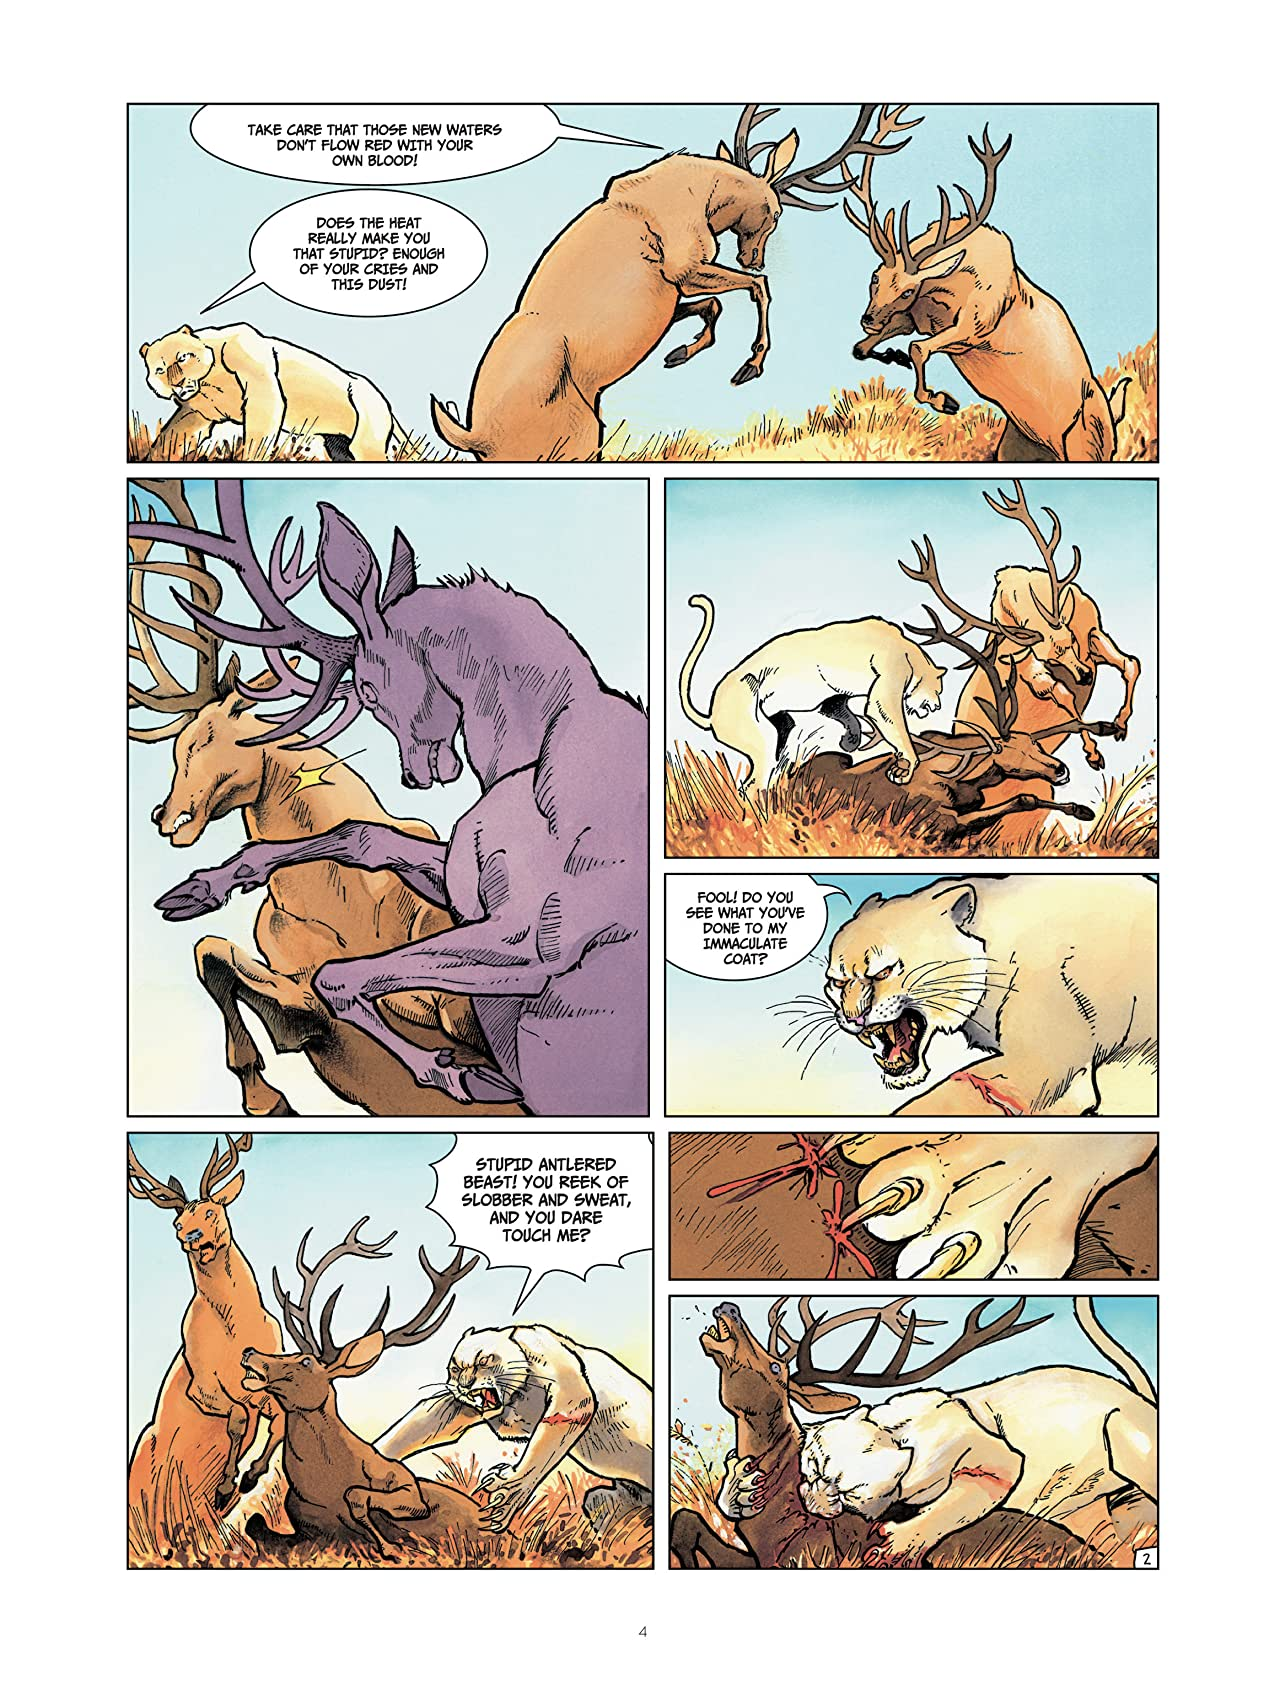 The Last Jungle Book Vol. 2: The Promise